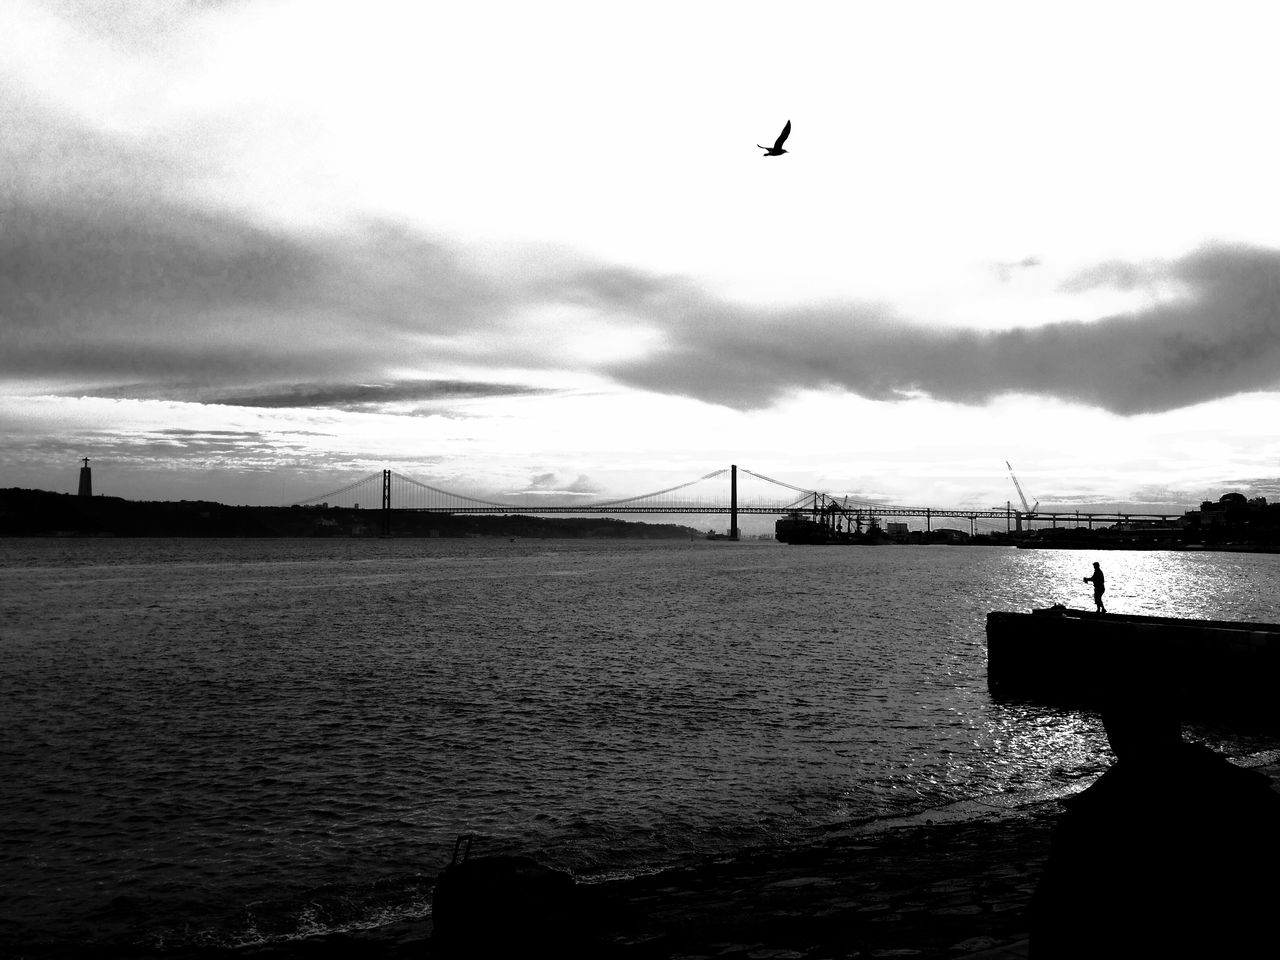 bird, water, animal themes, sea, flying, animals in the wild, sky, one animal, nature, outdoors, silhouette, connection, bridge - man made structure, day, built structure, no people, architecture, animal wildlife, mid-air, cloud - sky, suspension bridge, beauty in nature, scenics, spread wings